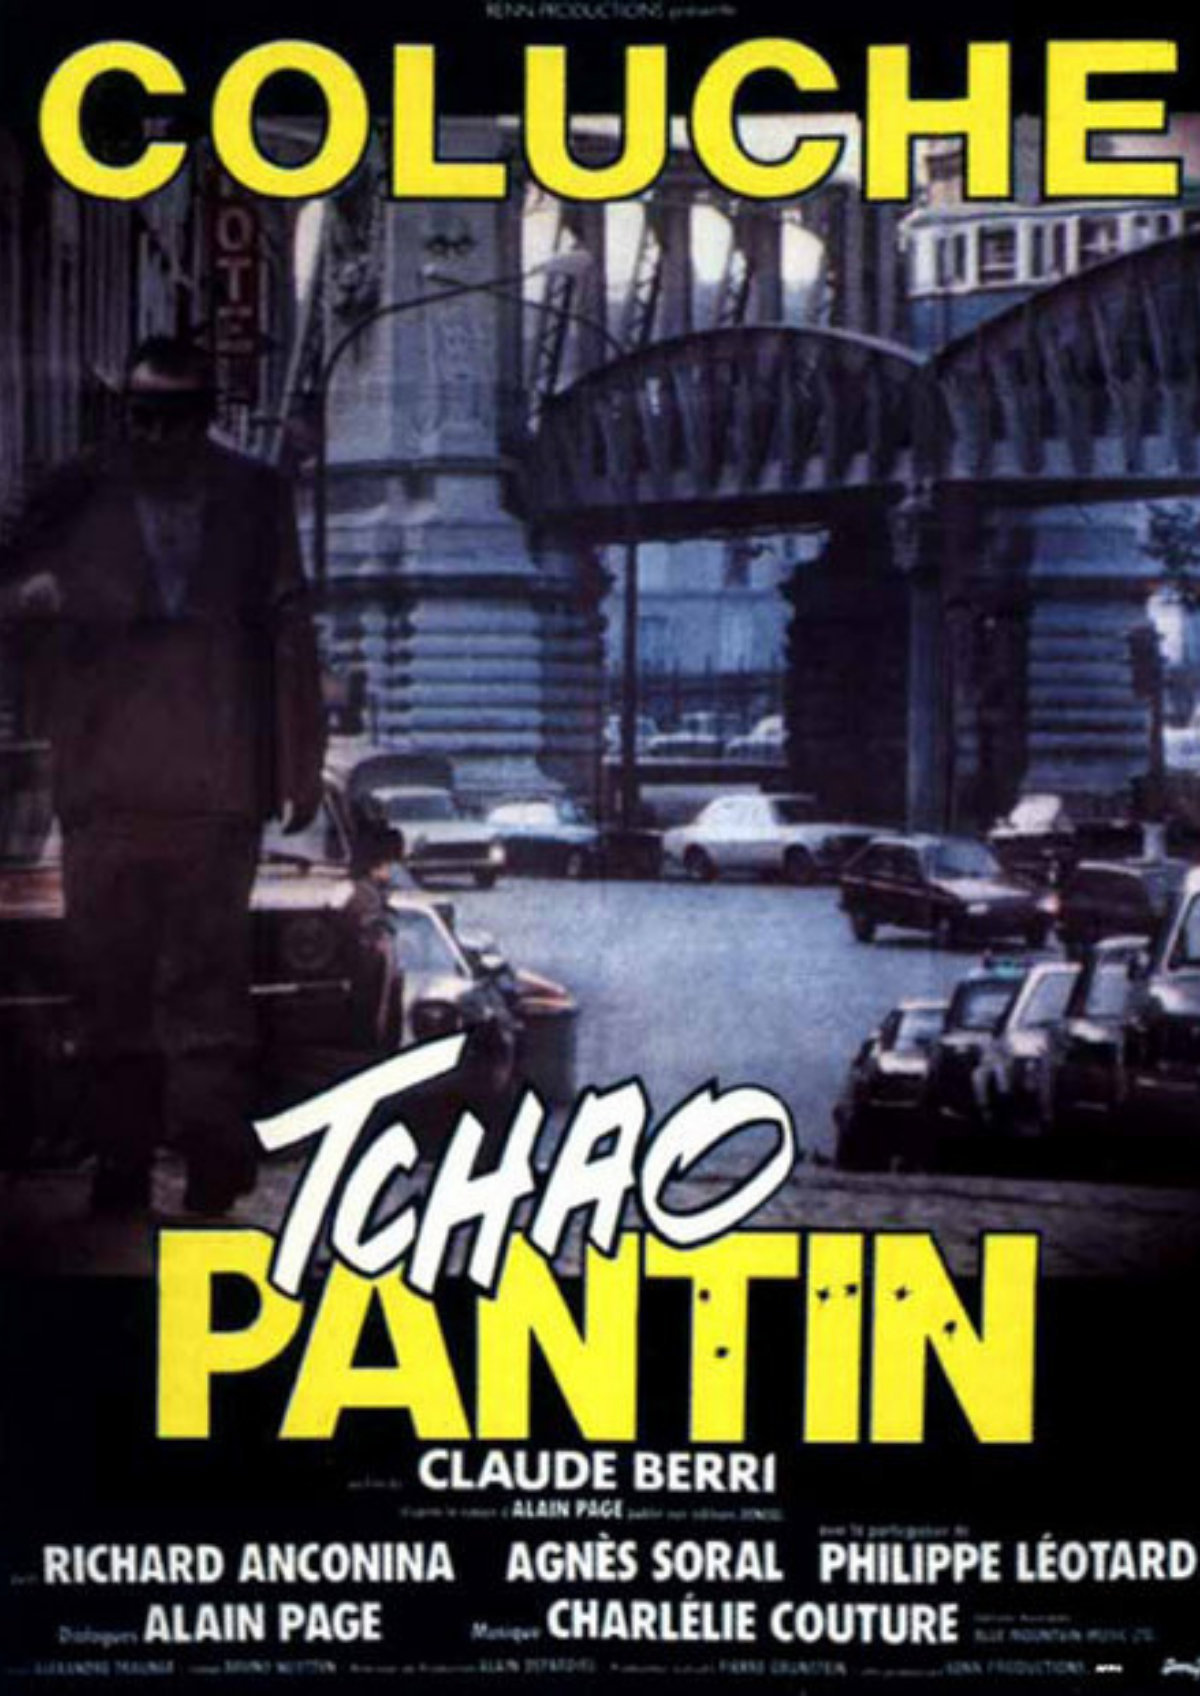 'Tchao Pantin (So Long, Stooge)' movie poster